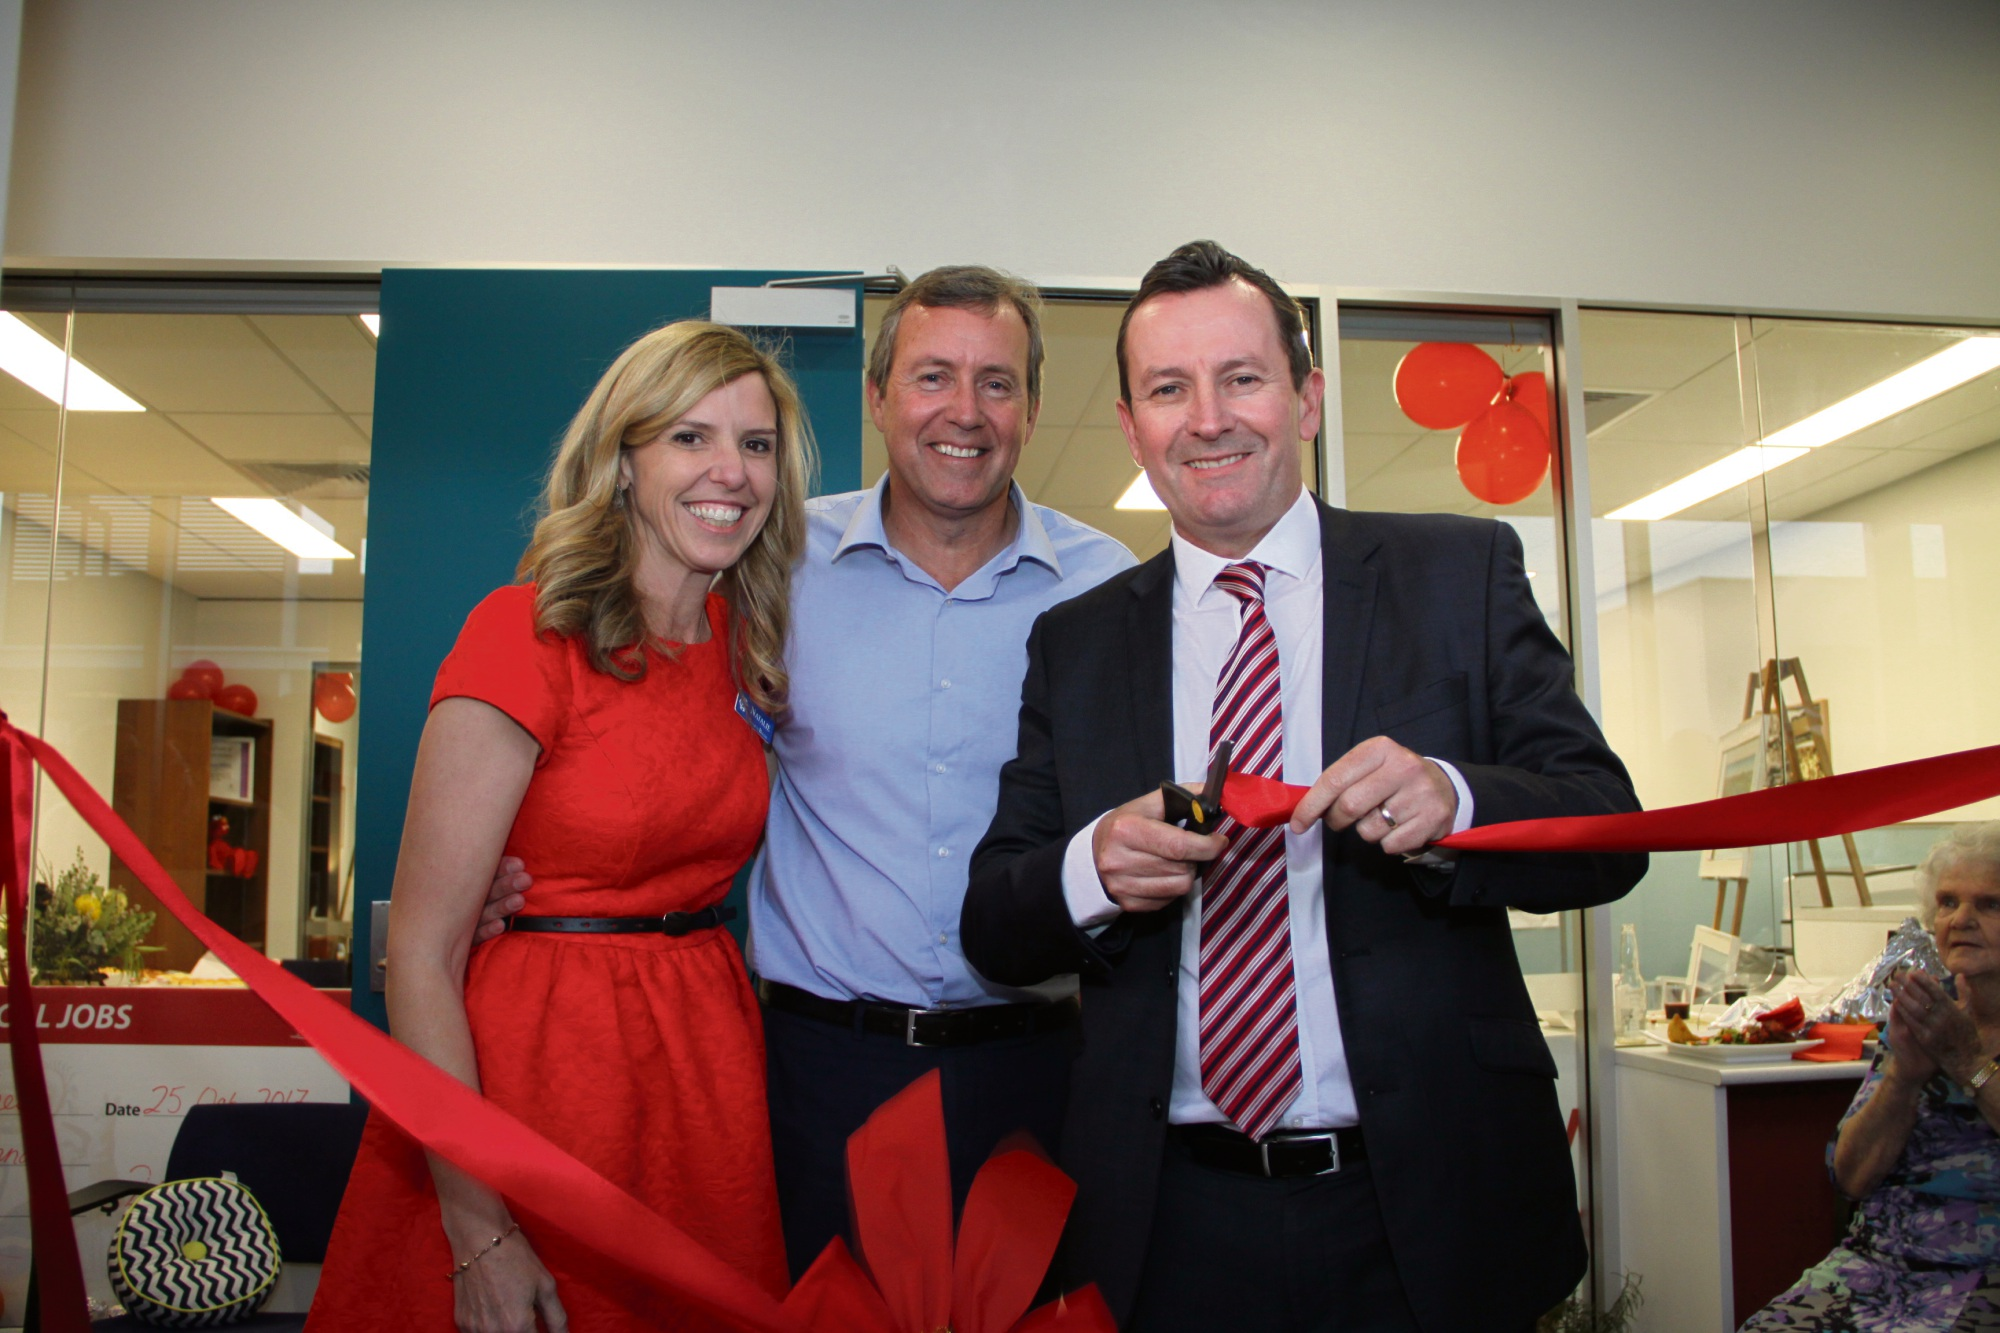 Natalie and Reece Whitby with Mark McGowan at the opening of Mr Whitby's new Baldivis office.